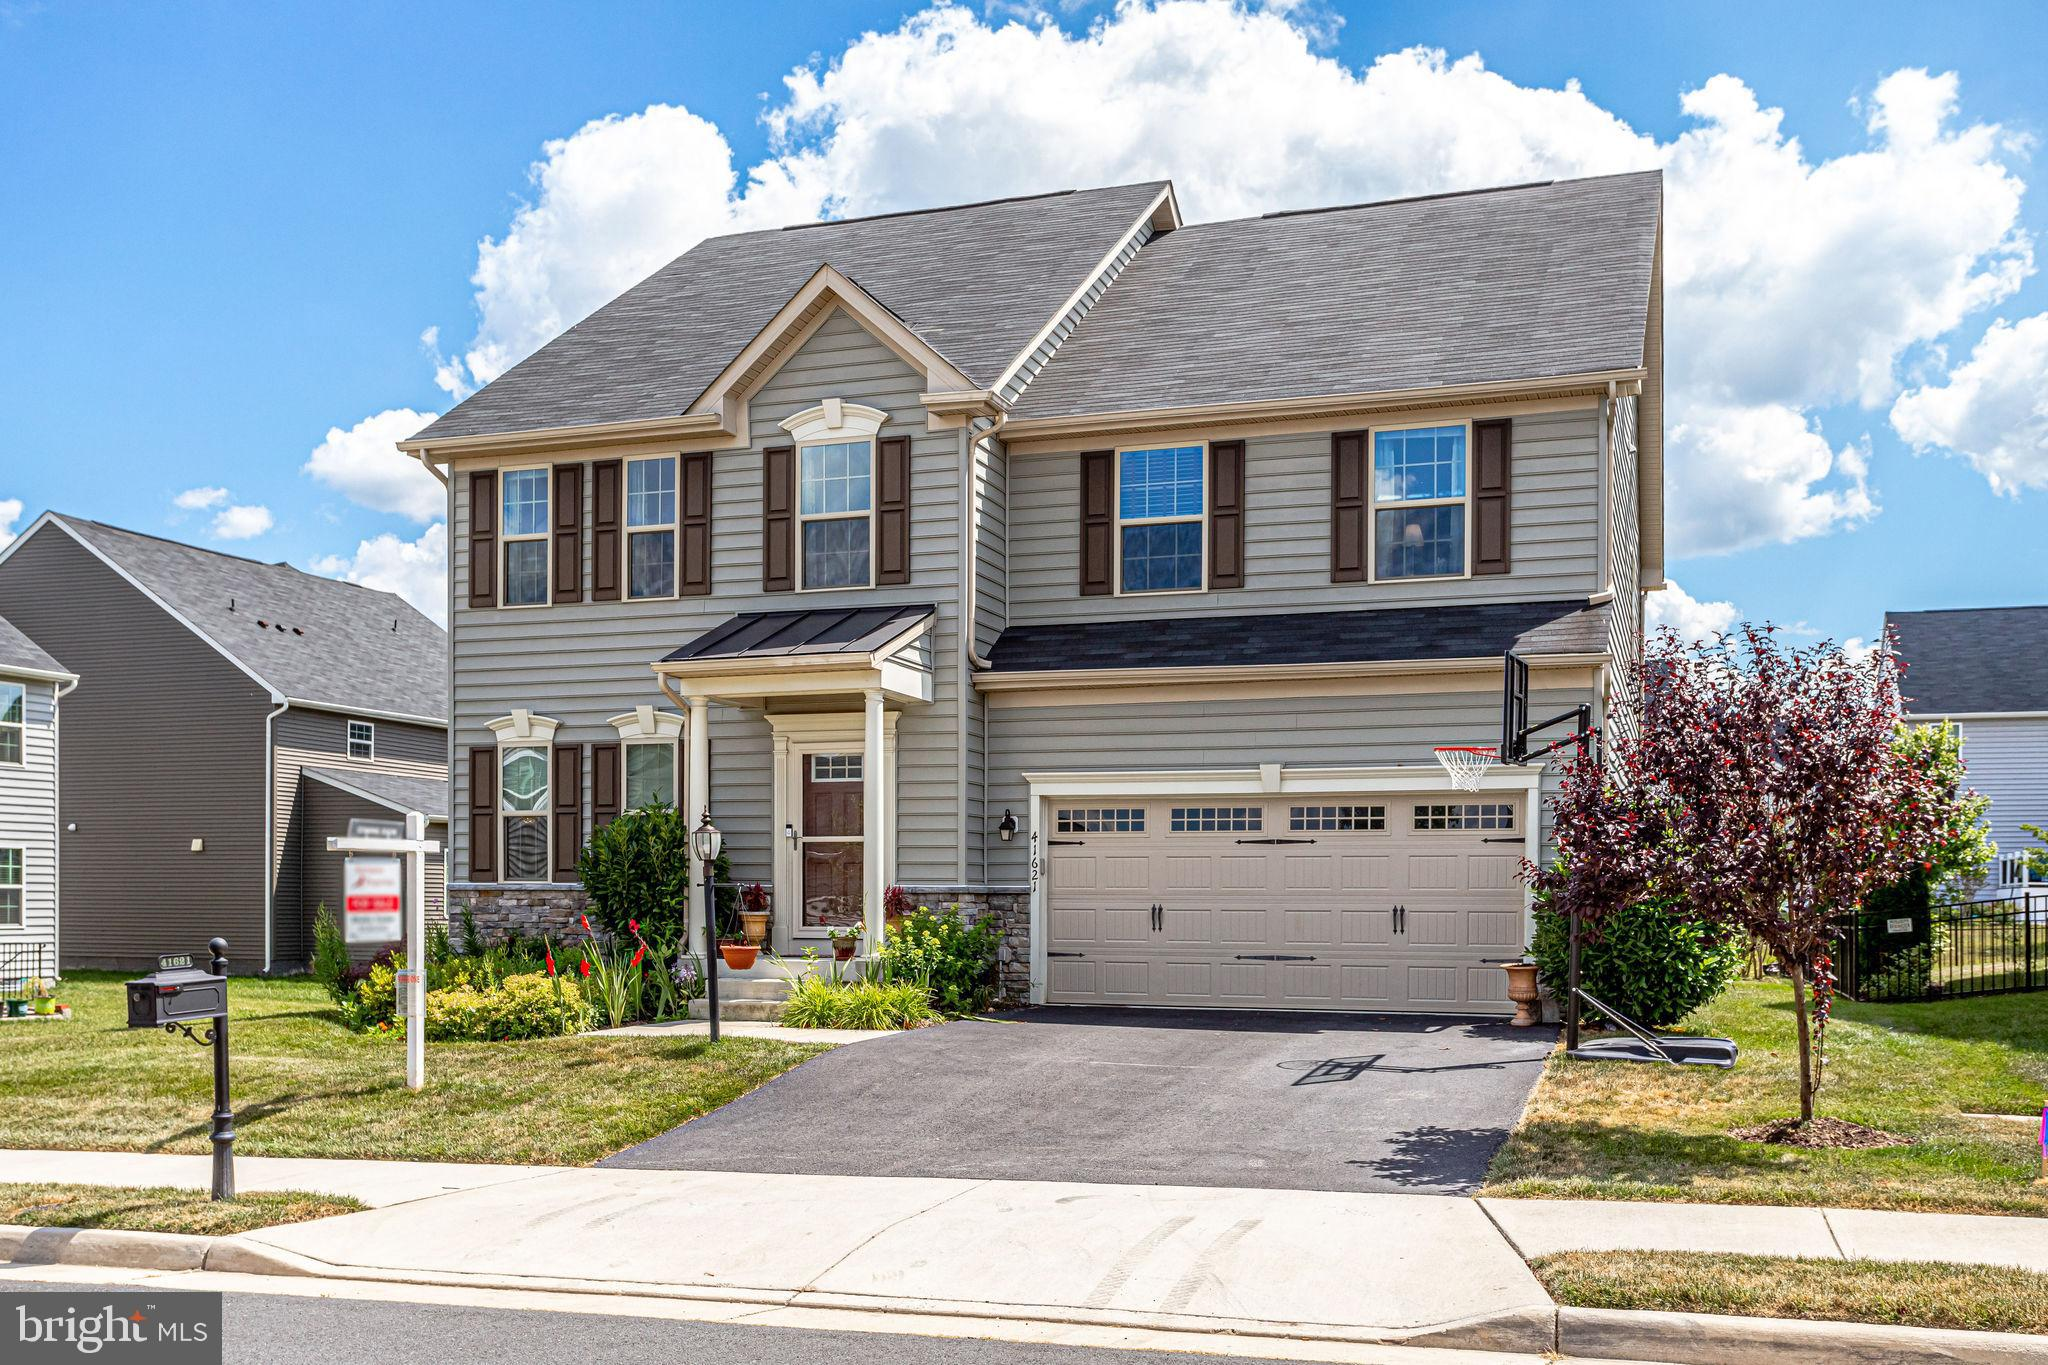 This upgraded Ryan Naples floor plan four (4) bedroom, 3.5 bathroom home is only 6 years old and is